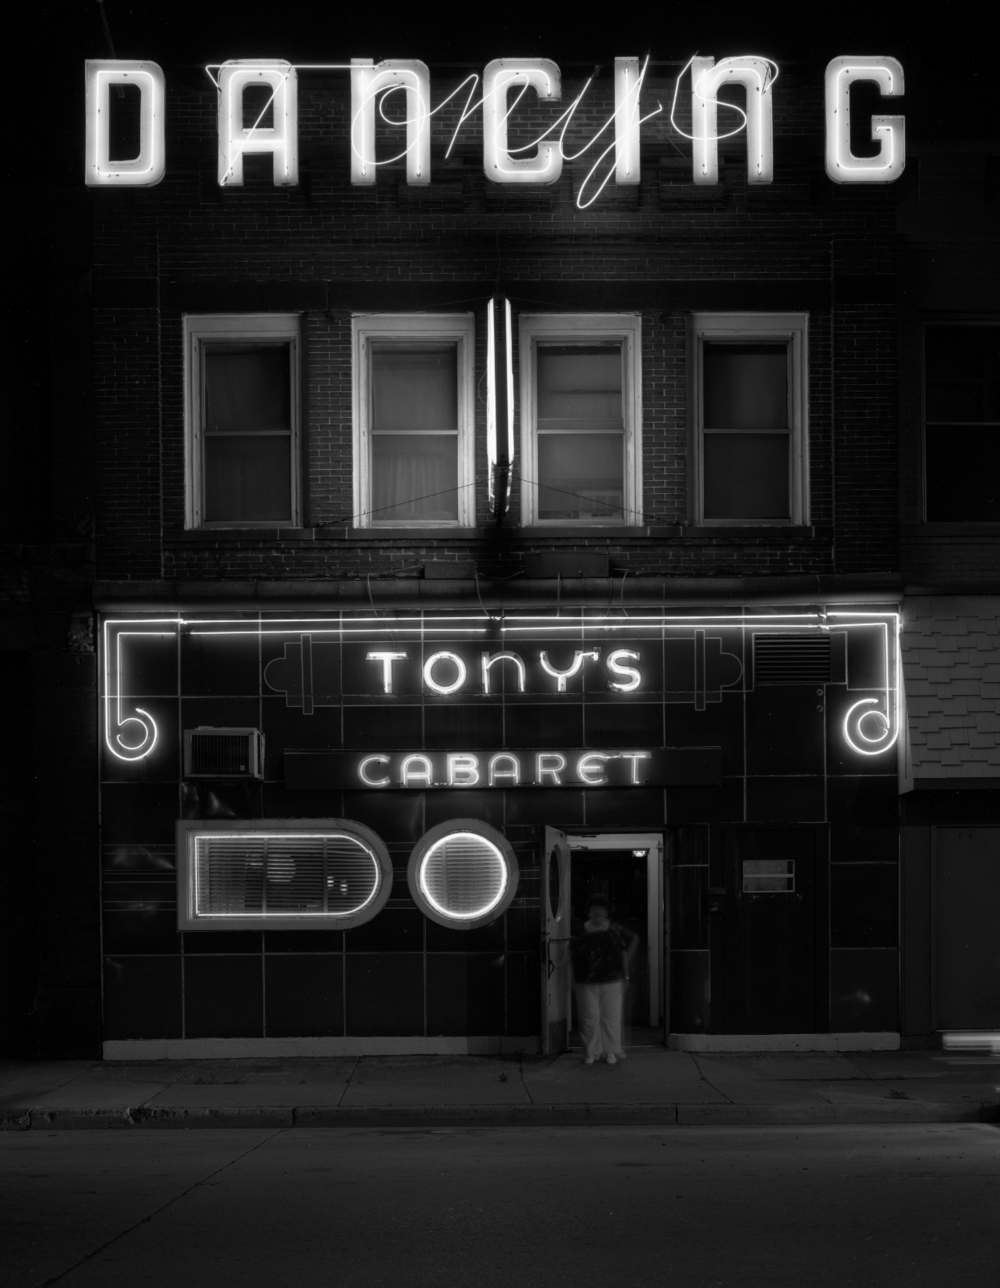 Tony's Cabaret, Superior,  Wisconsin, 1982